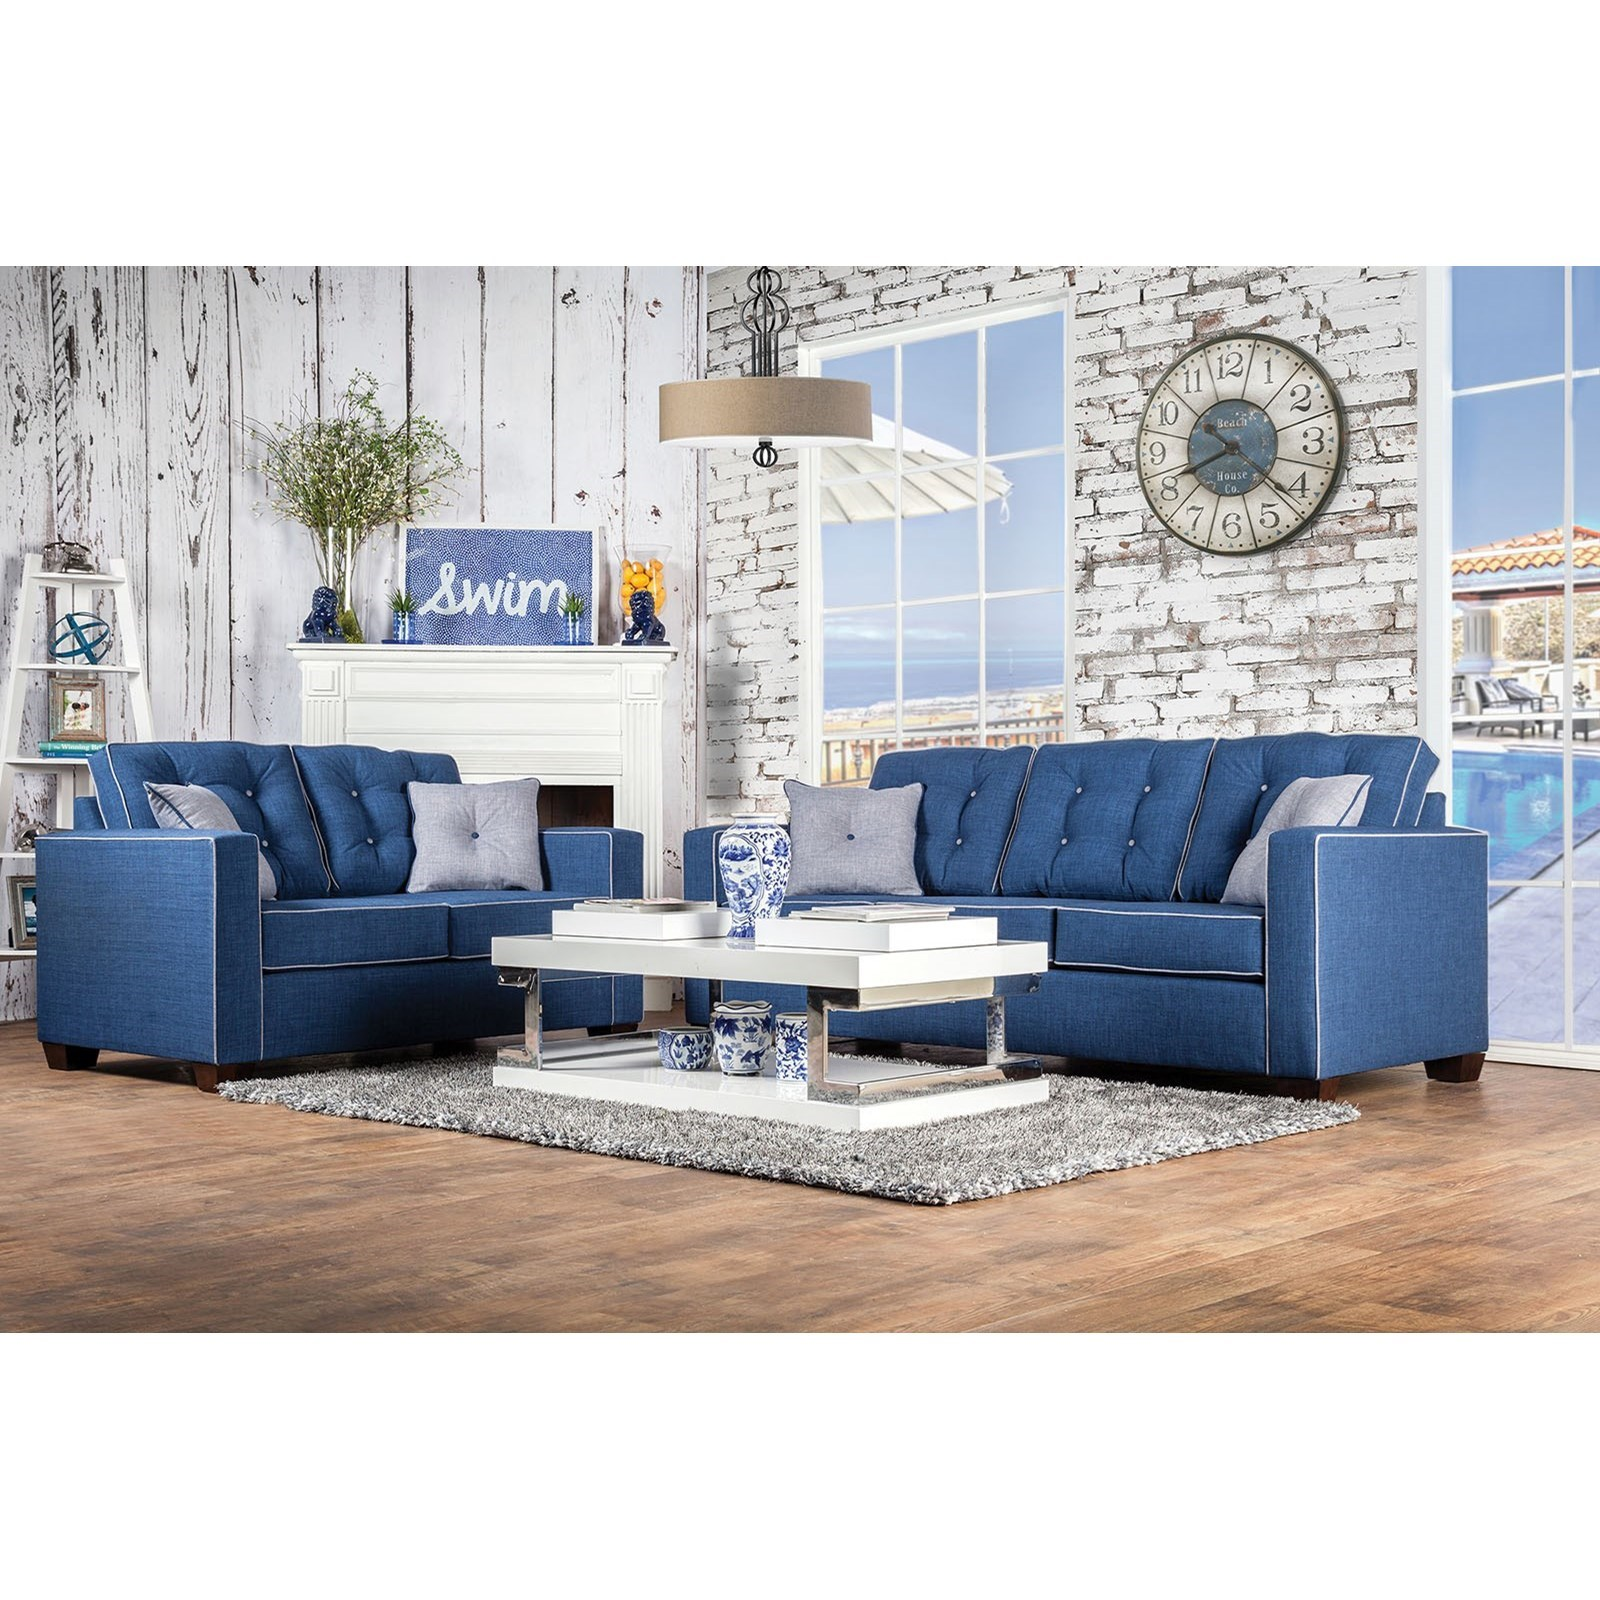 Ravel I Sofa and Love Seat by Furniture of America - FOA at Del Sol Furniture